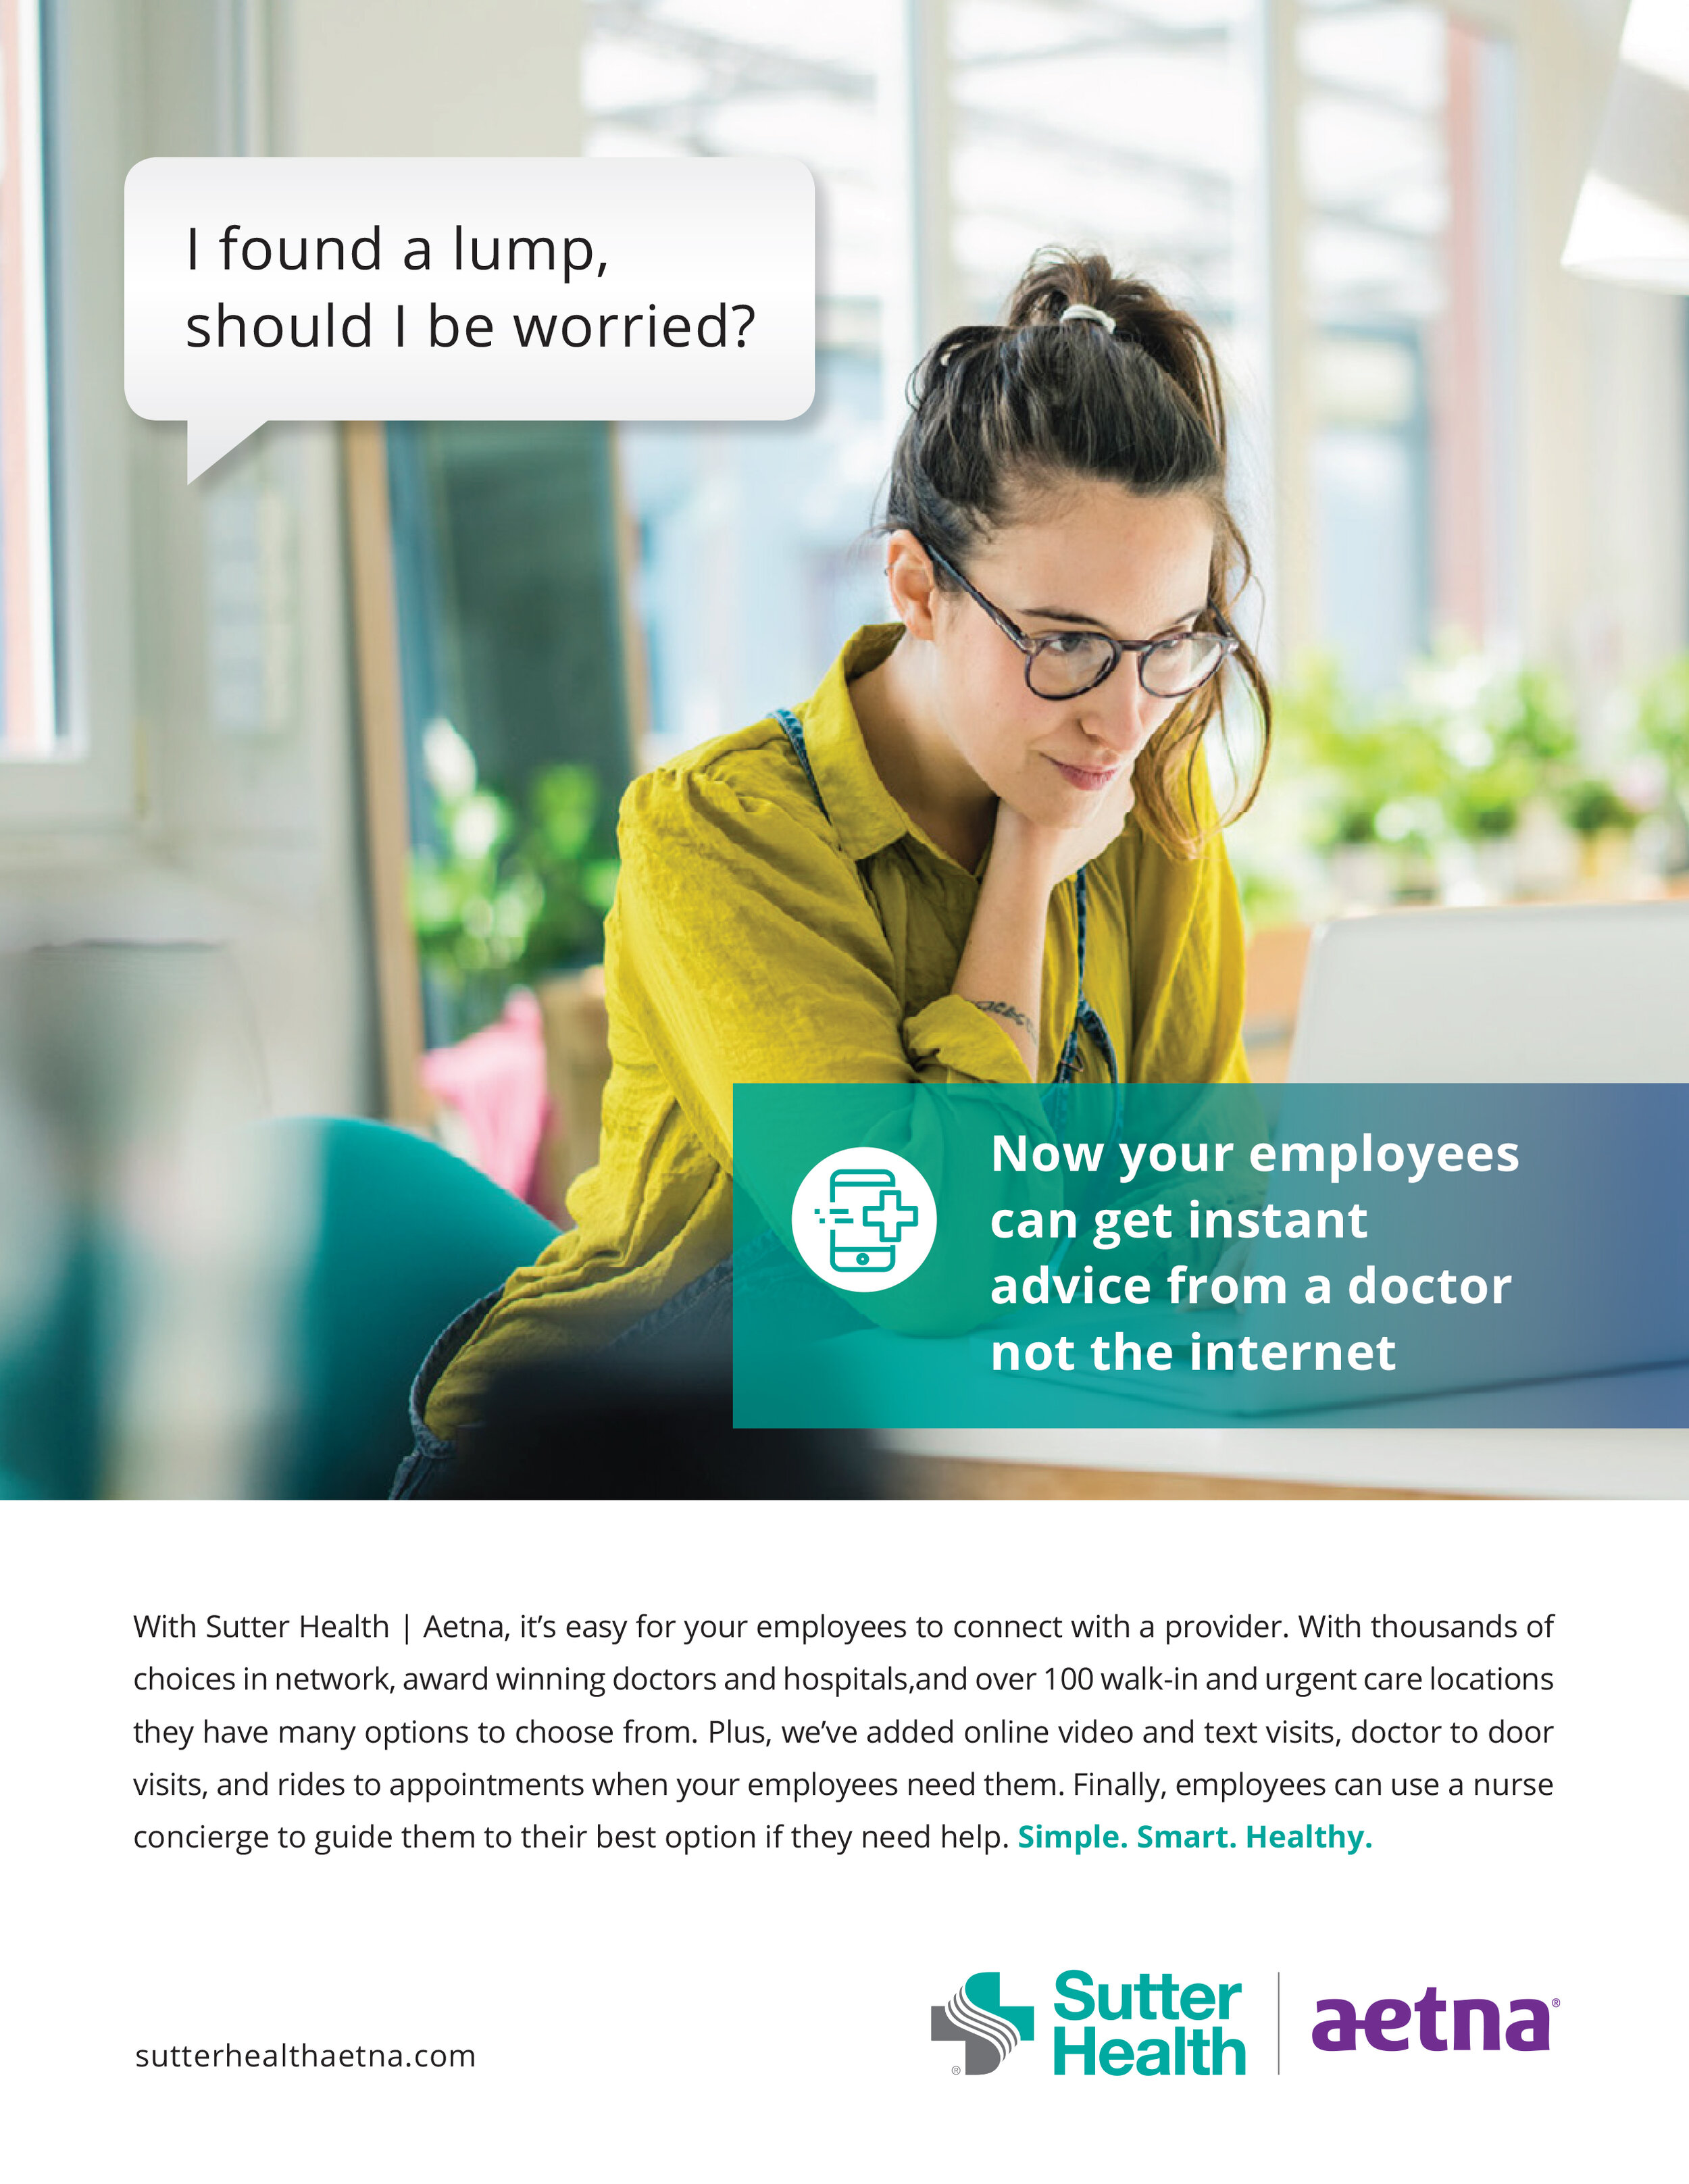 I found a lump, should I be worried? Now your employees can get instant advice from a doctor, not the internet. - With Sutter Health | Aetna, it's easy for your employees to connect with a provider. With thousands of choices in network, award-winning doctors and hospitals, and over 100 walk-in and urgent care locations they have many options to choose from. Plus, we've added online video and text visits, doctor to door visits, and rides when your employees need them. Simple. Smart. Healthy.